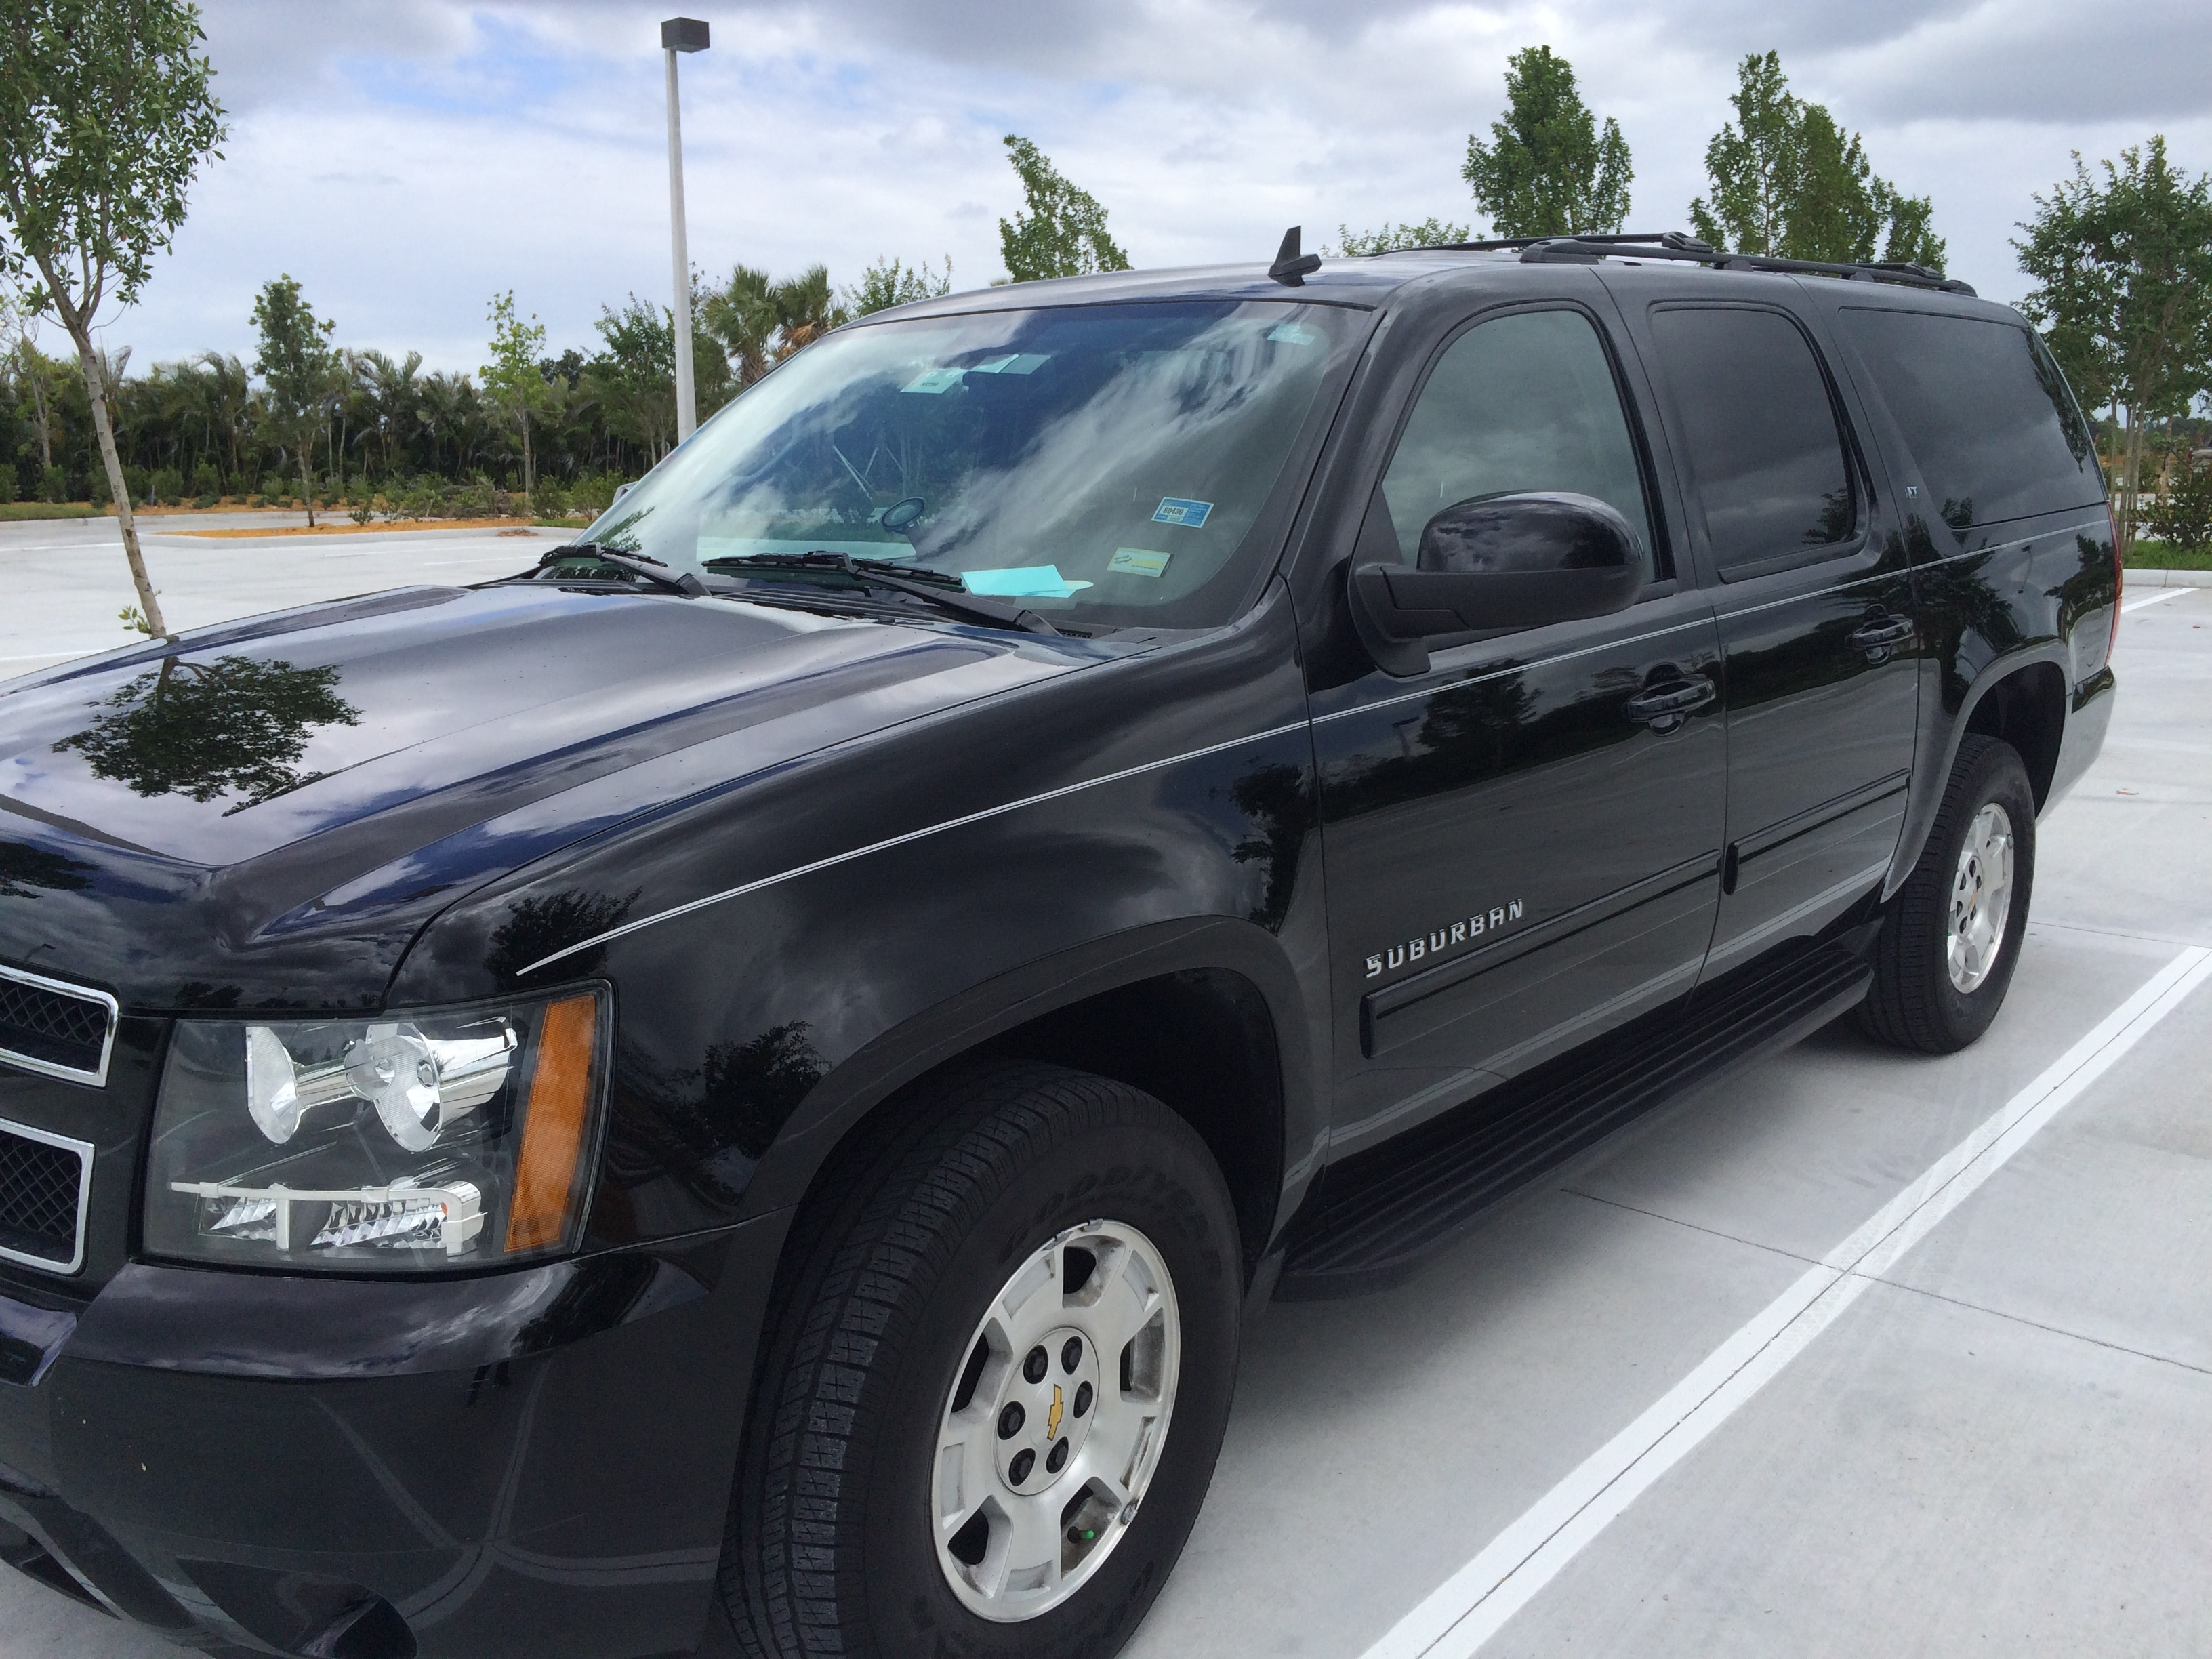 Alpine Limousine service photo